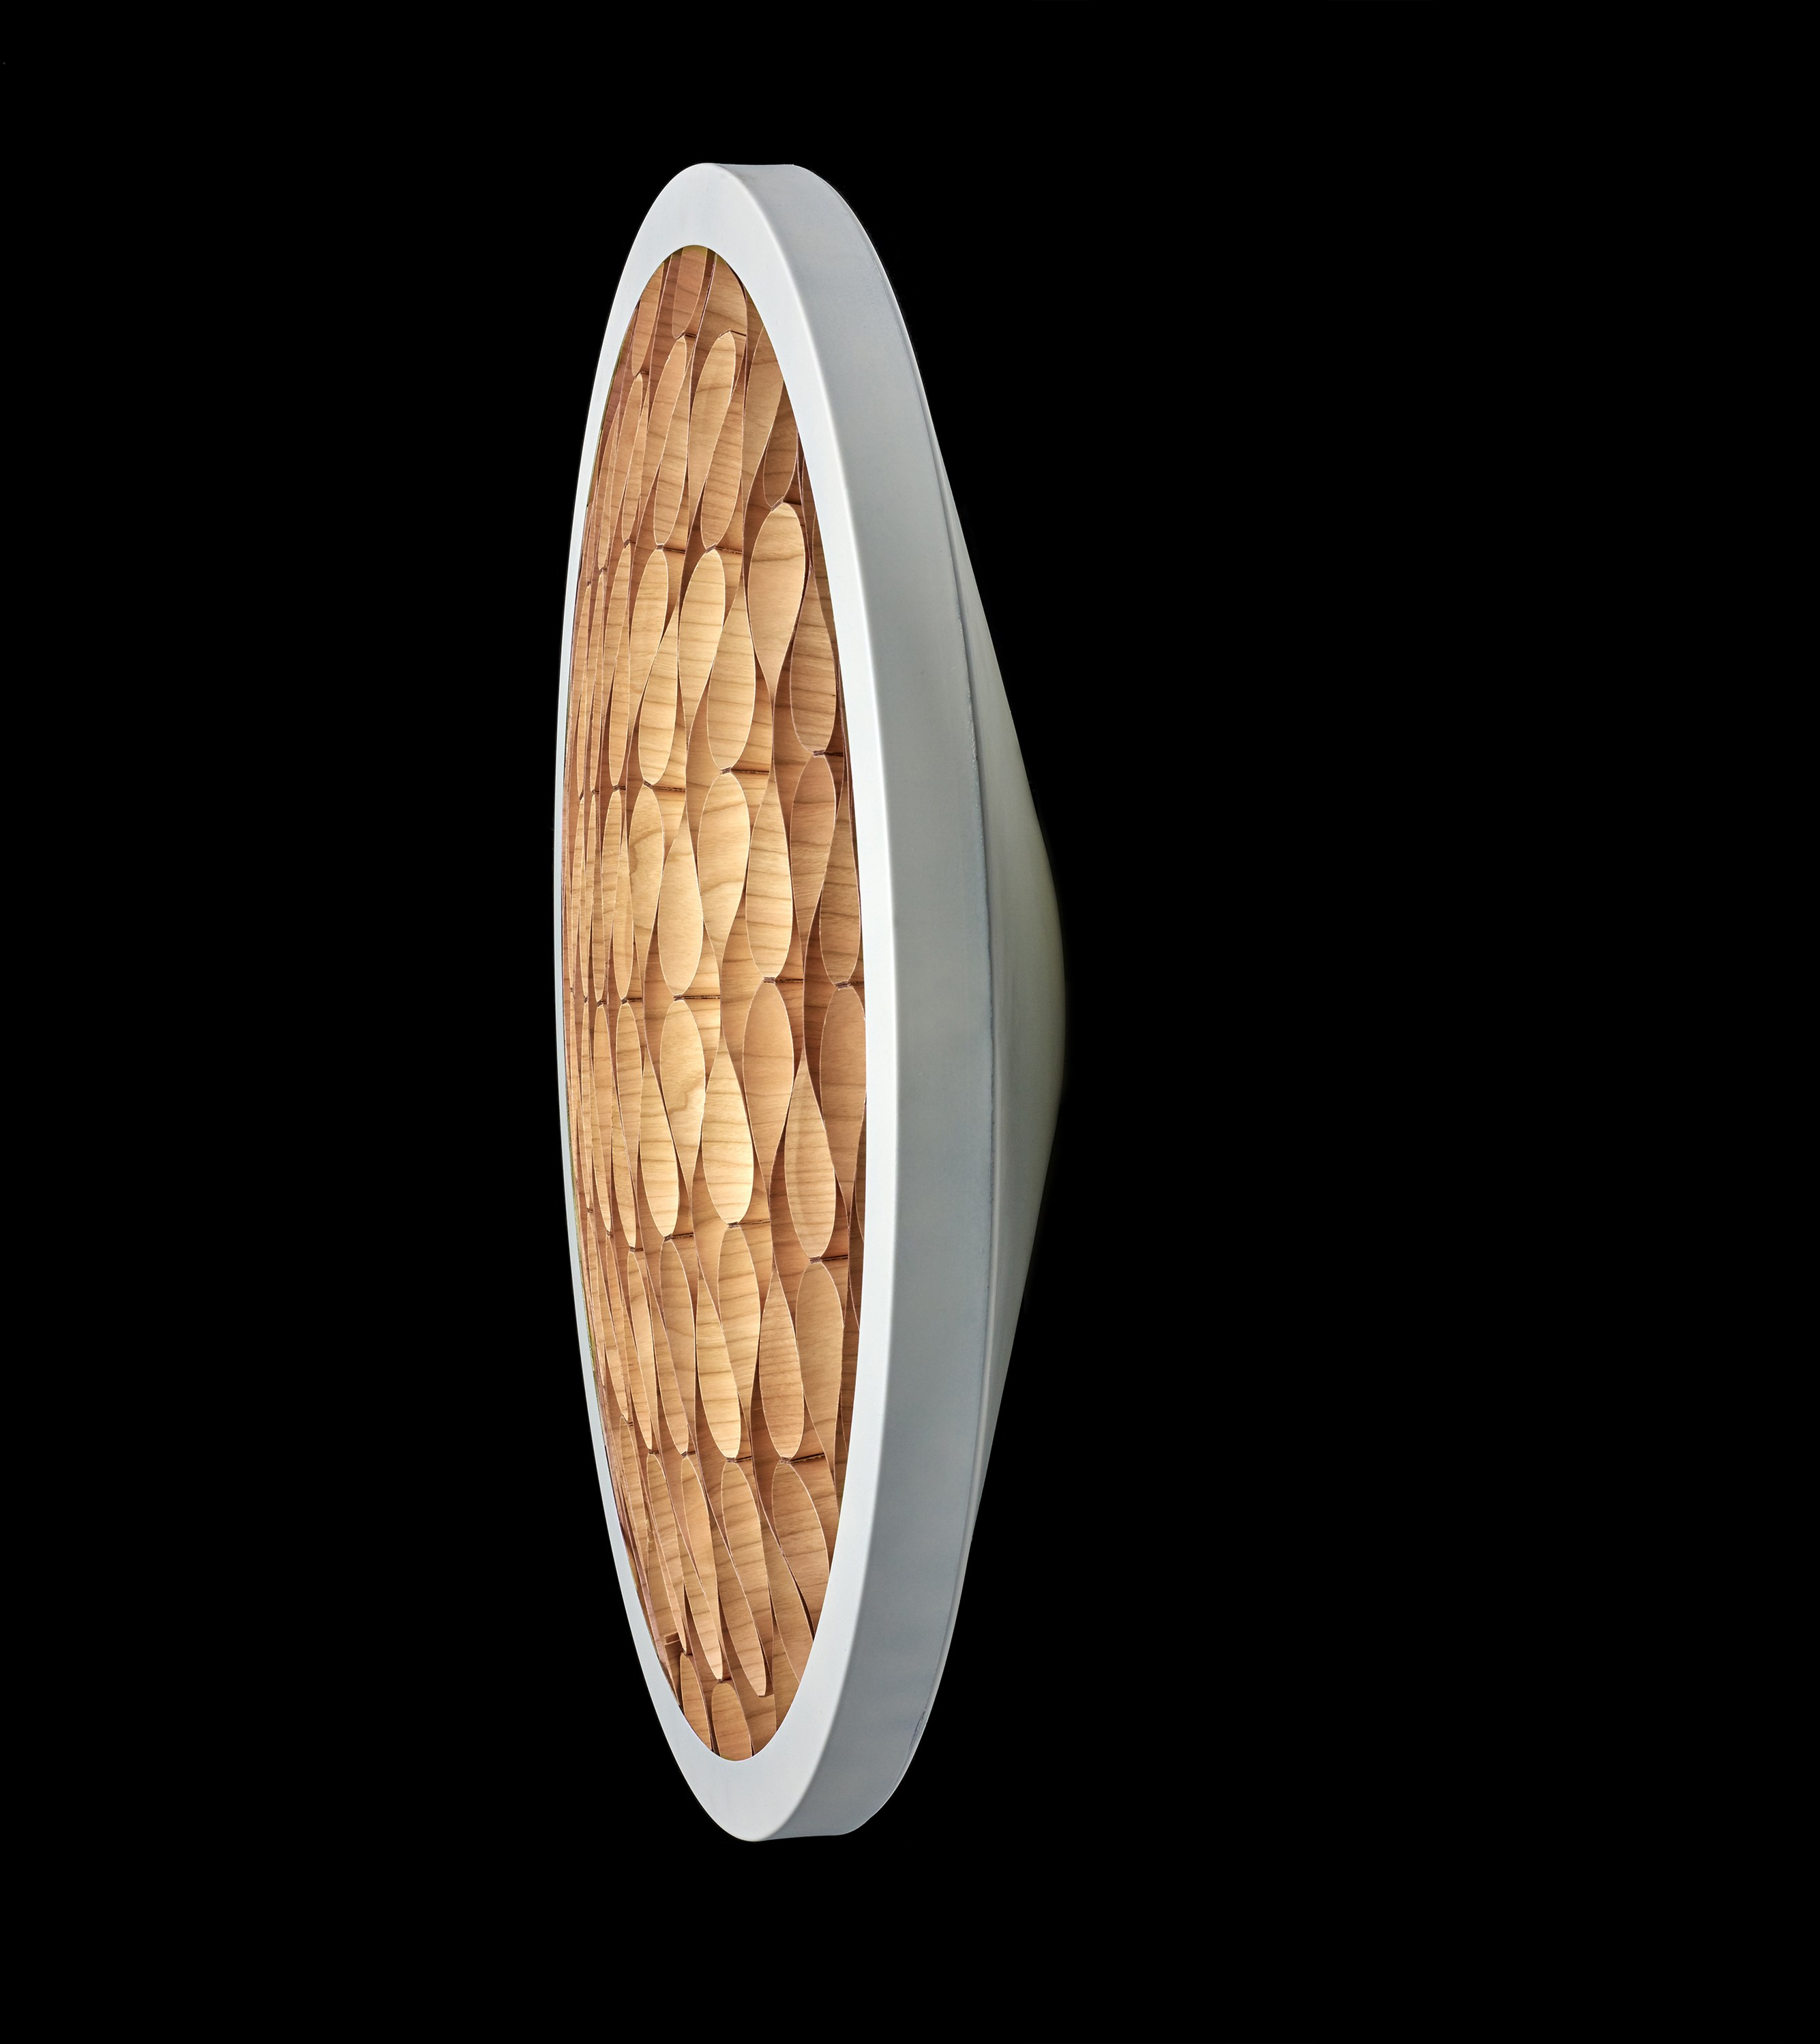 LED handmade wood veneer wall light CERVANTES A by LZF design Burkhard Dammer